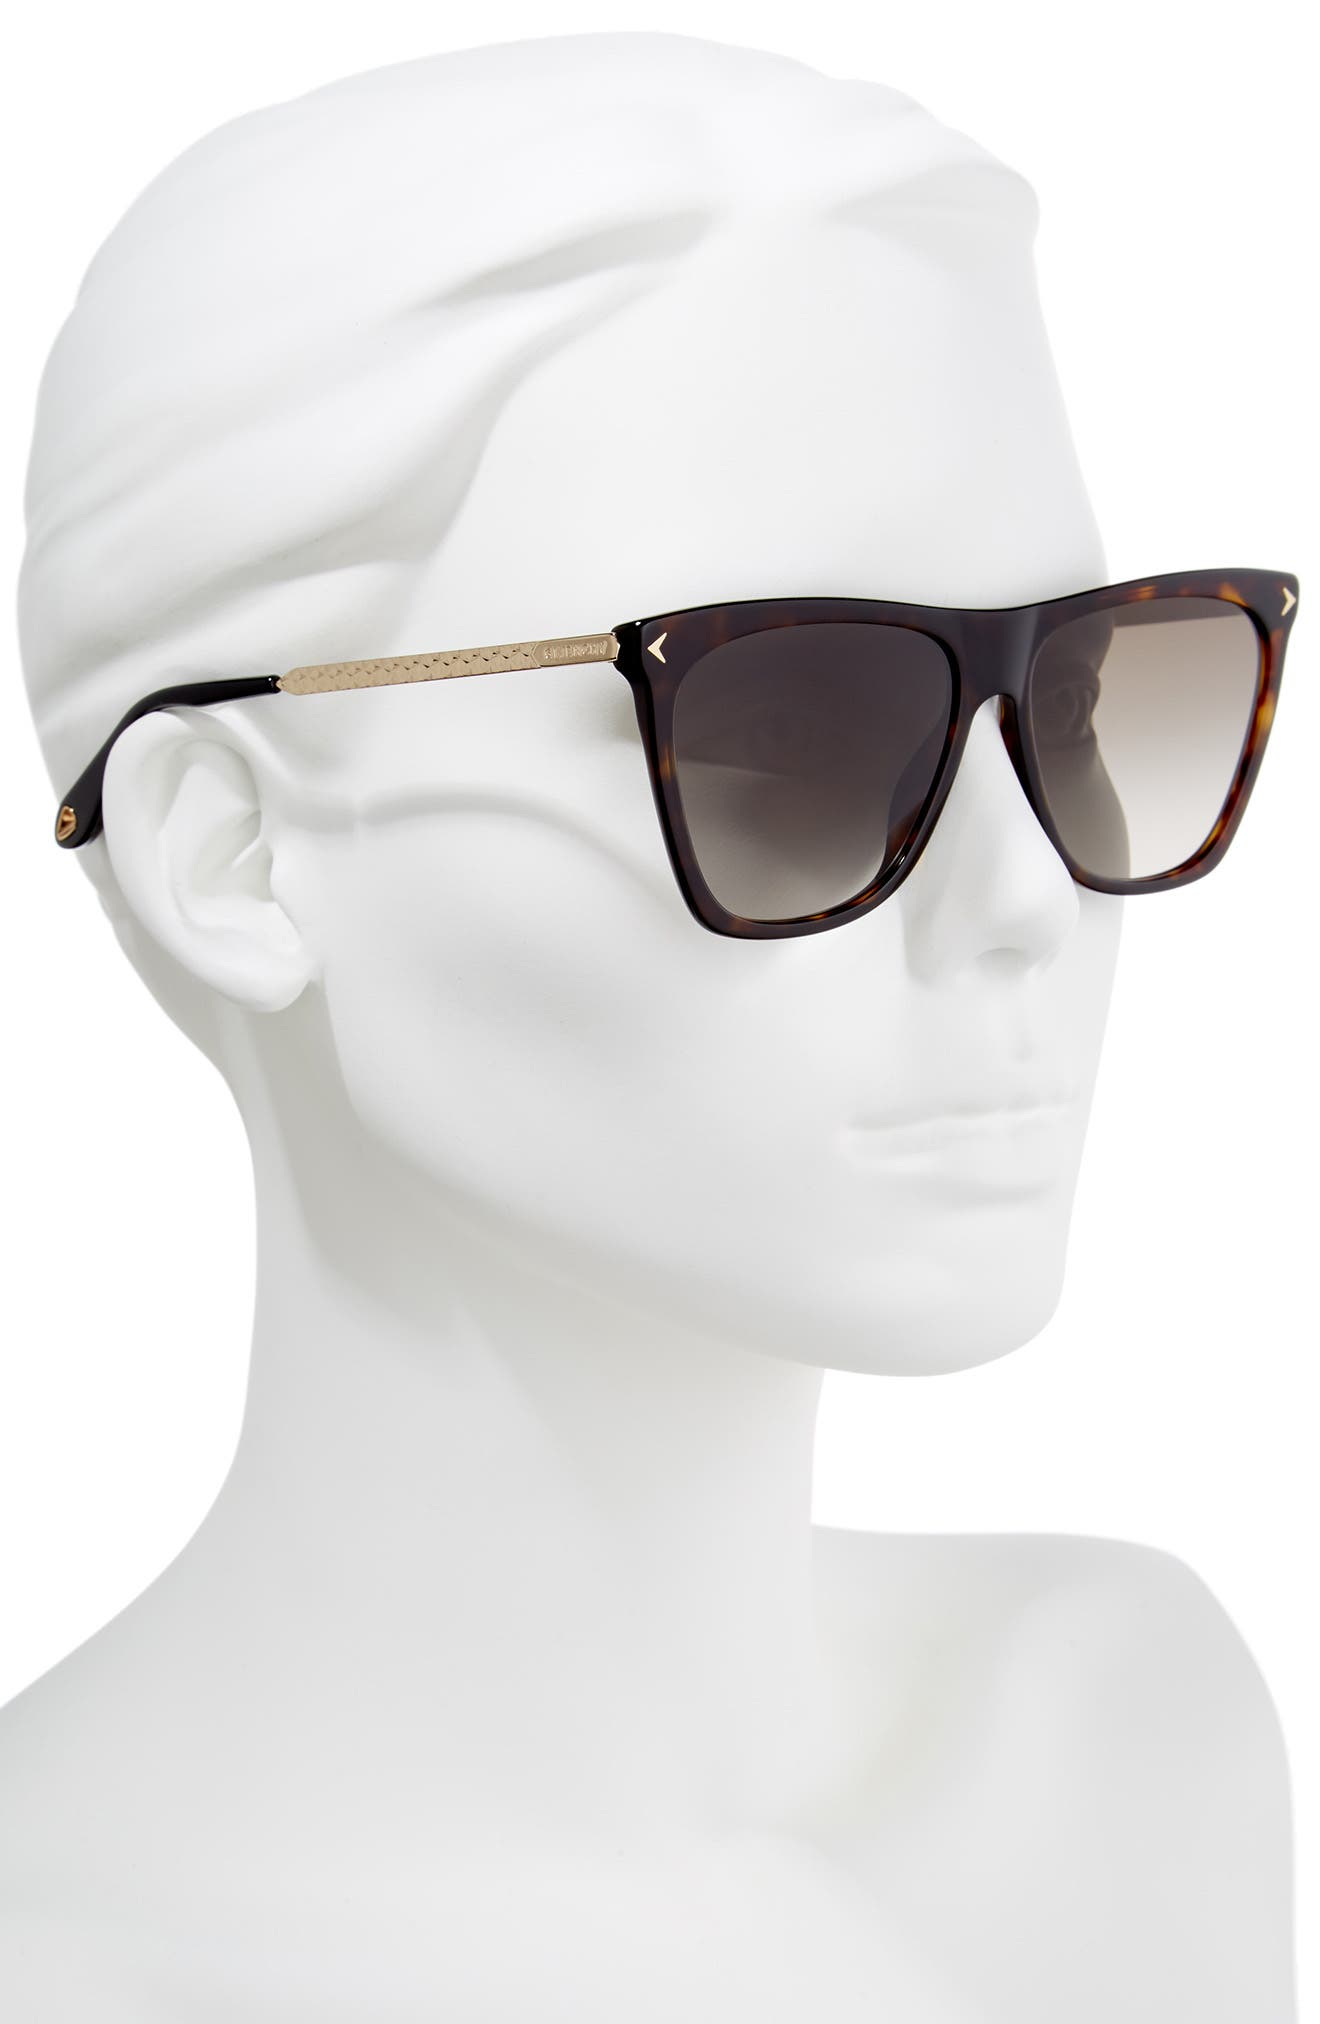 58mm Flat Top Sunglasses,                             Alternate thumbnail 2, color,                             Dark Havana